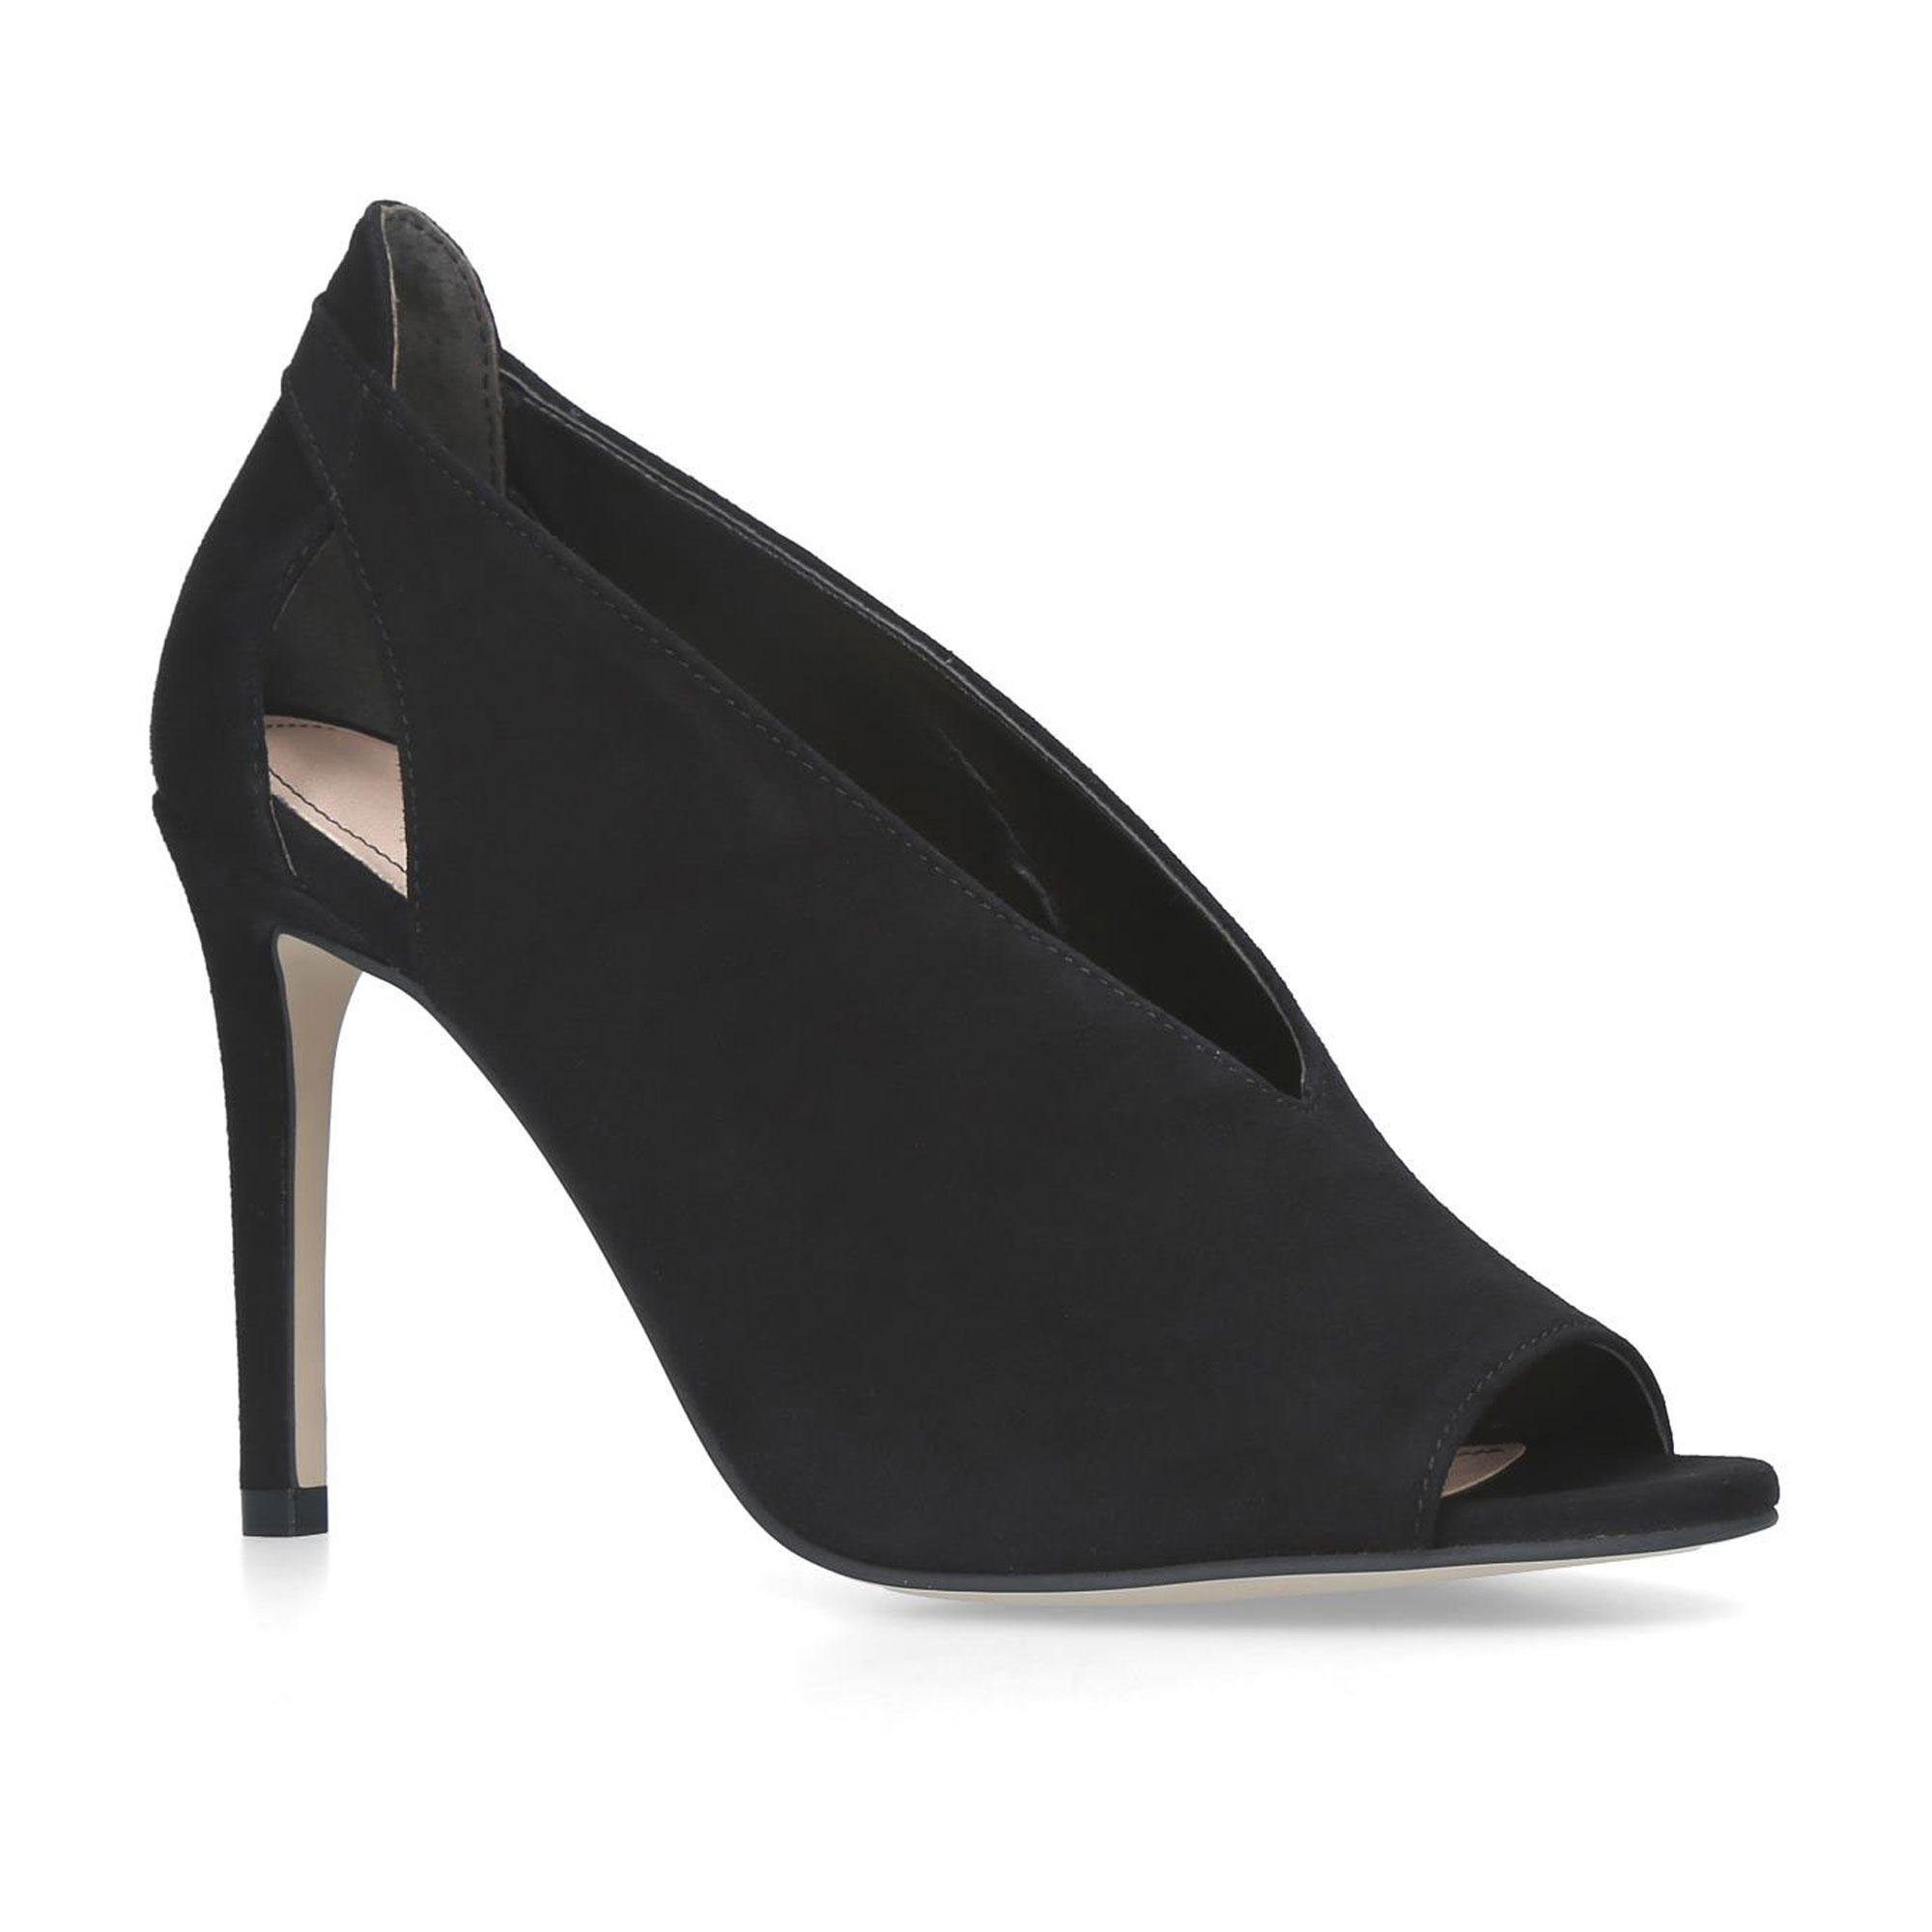 5057720739265: Alpha Court Shoe